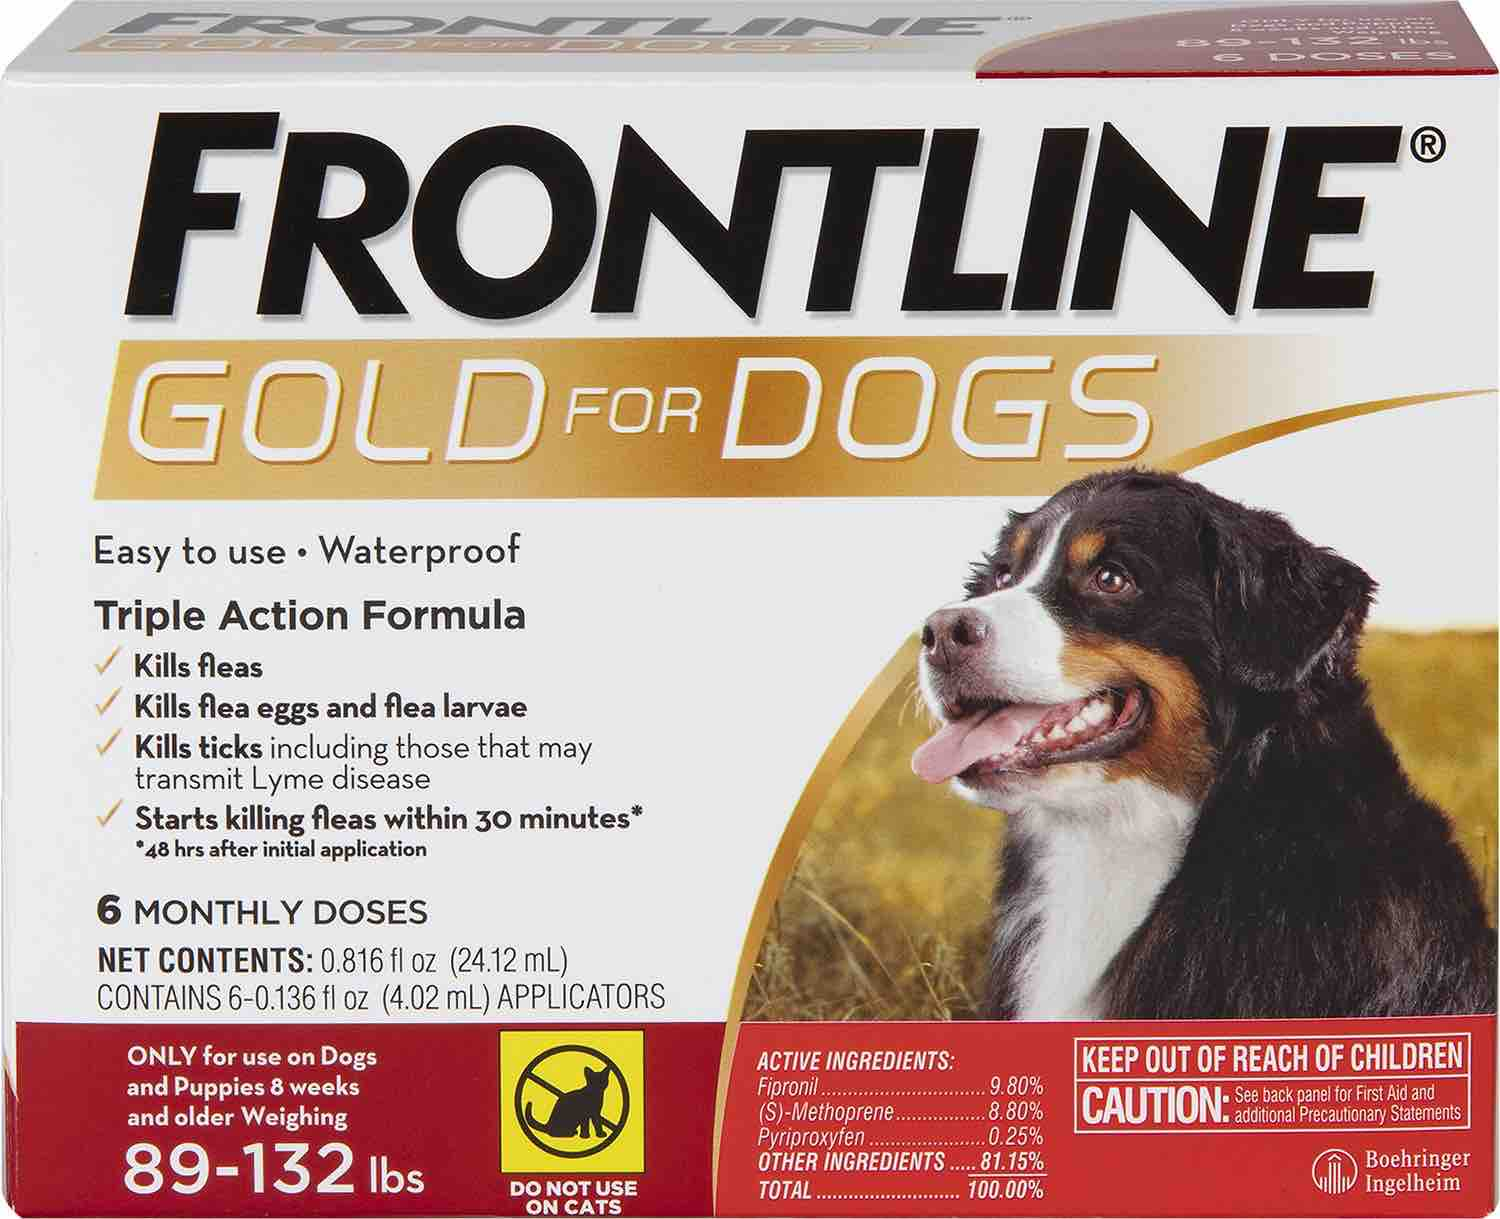 Frontline Gold for Dogs 6 doses 89-132 lbs (Red) 1